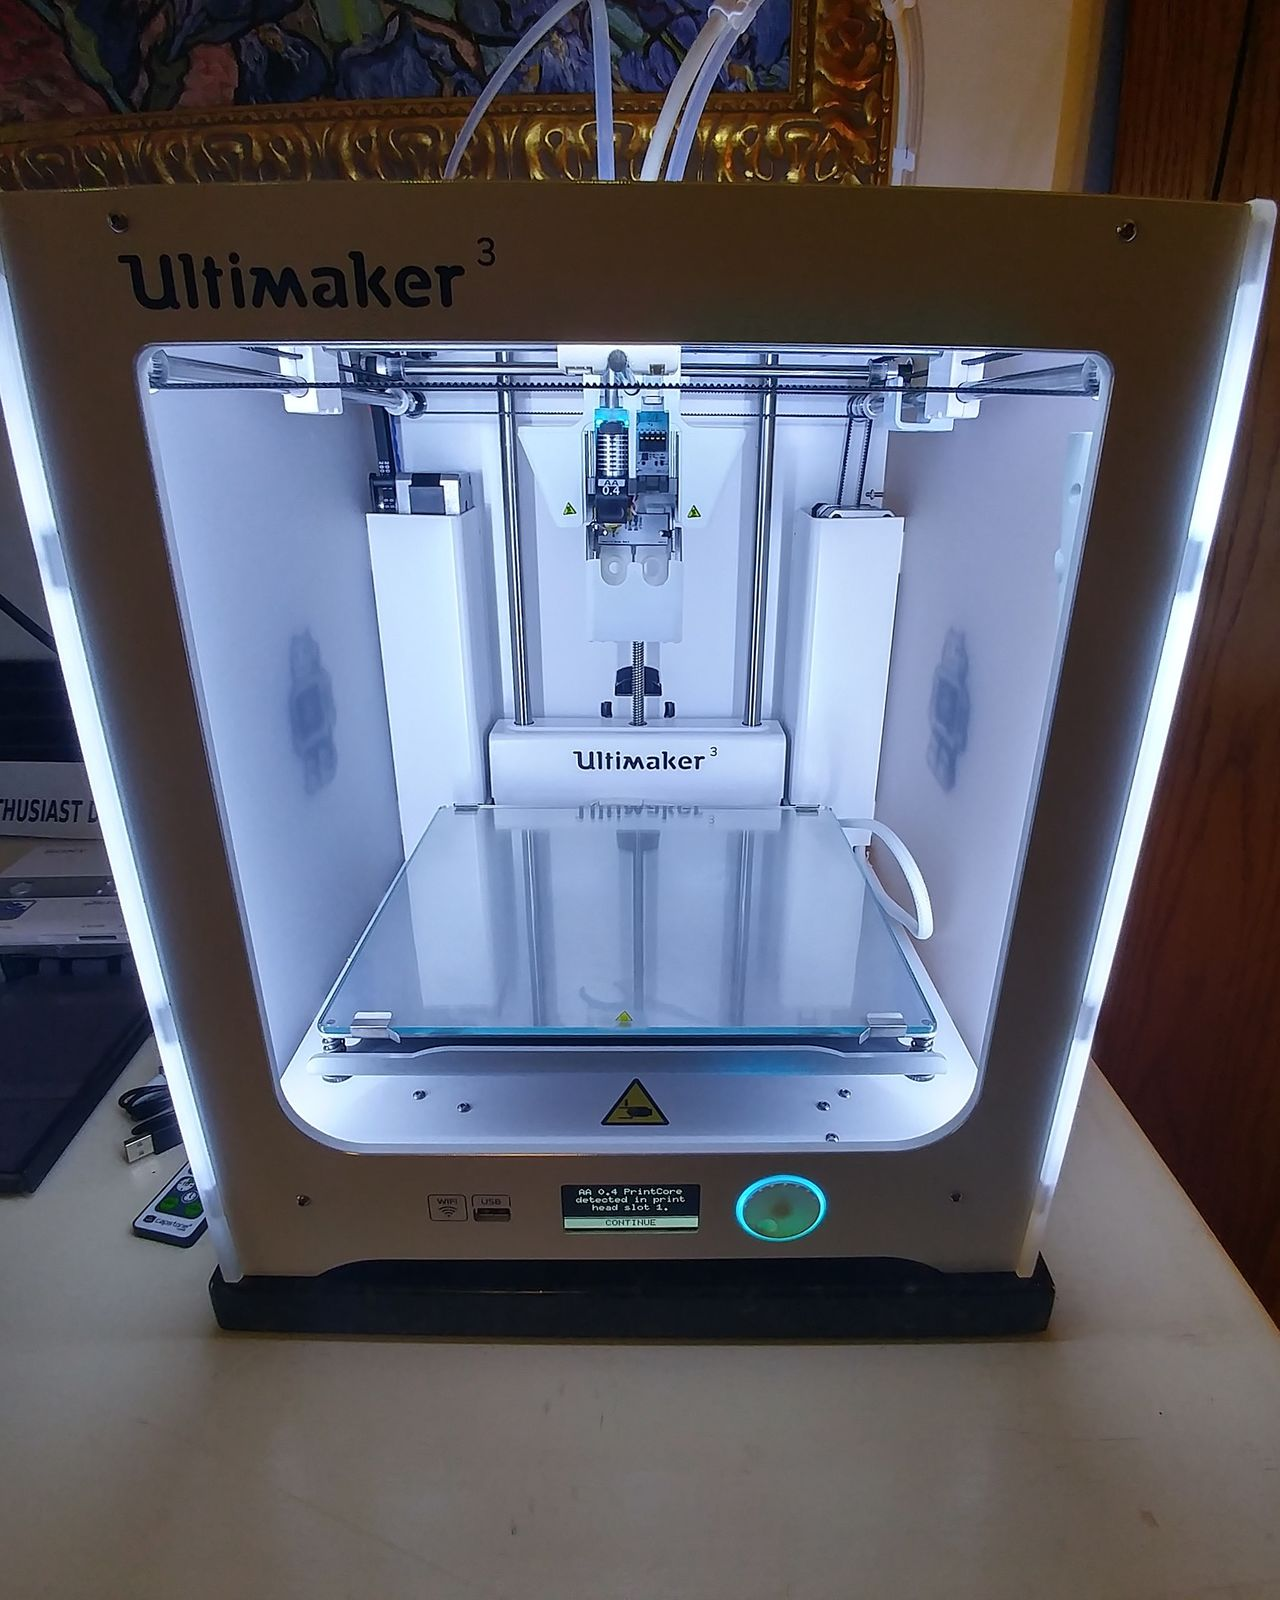 3D Printer Business Finance And Industry Close-up No People 3d Printing 3D Printer 3Dprint Ultimaker Ultimaker3 Prototype Protoboard Innovation Technology Tech Design Business Product Design Highquality Entrepreneur